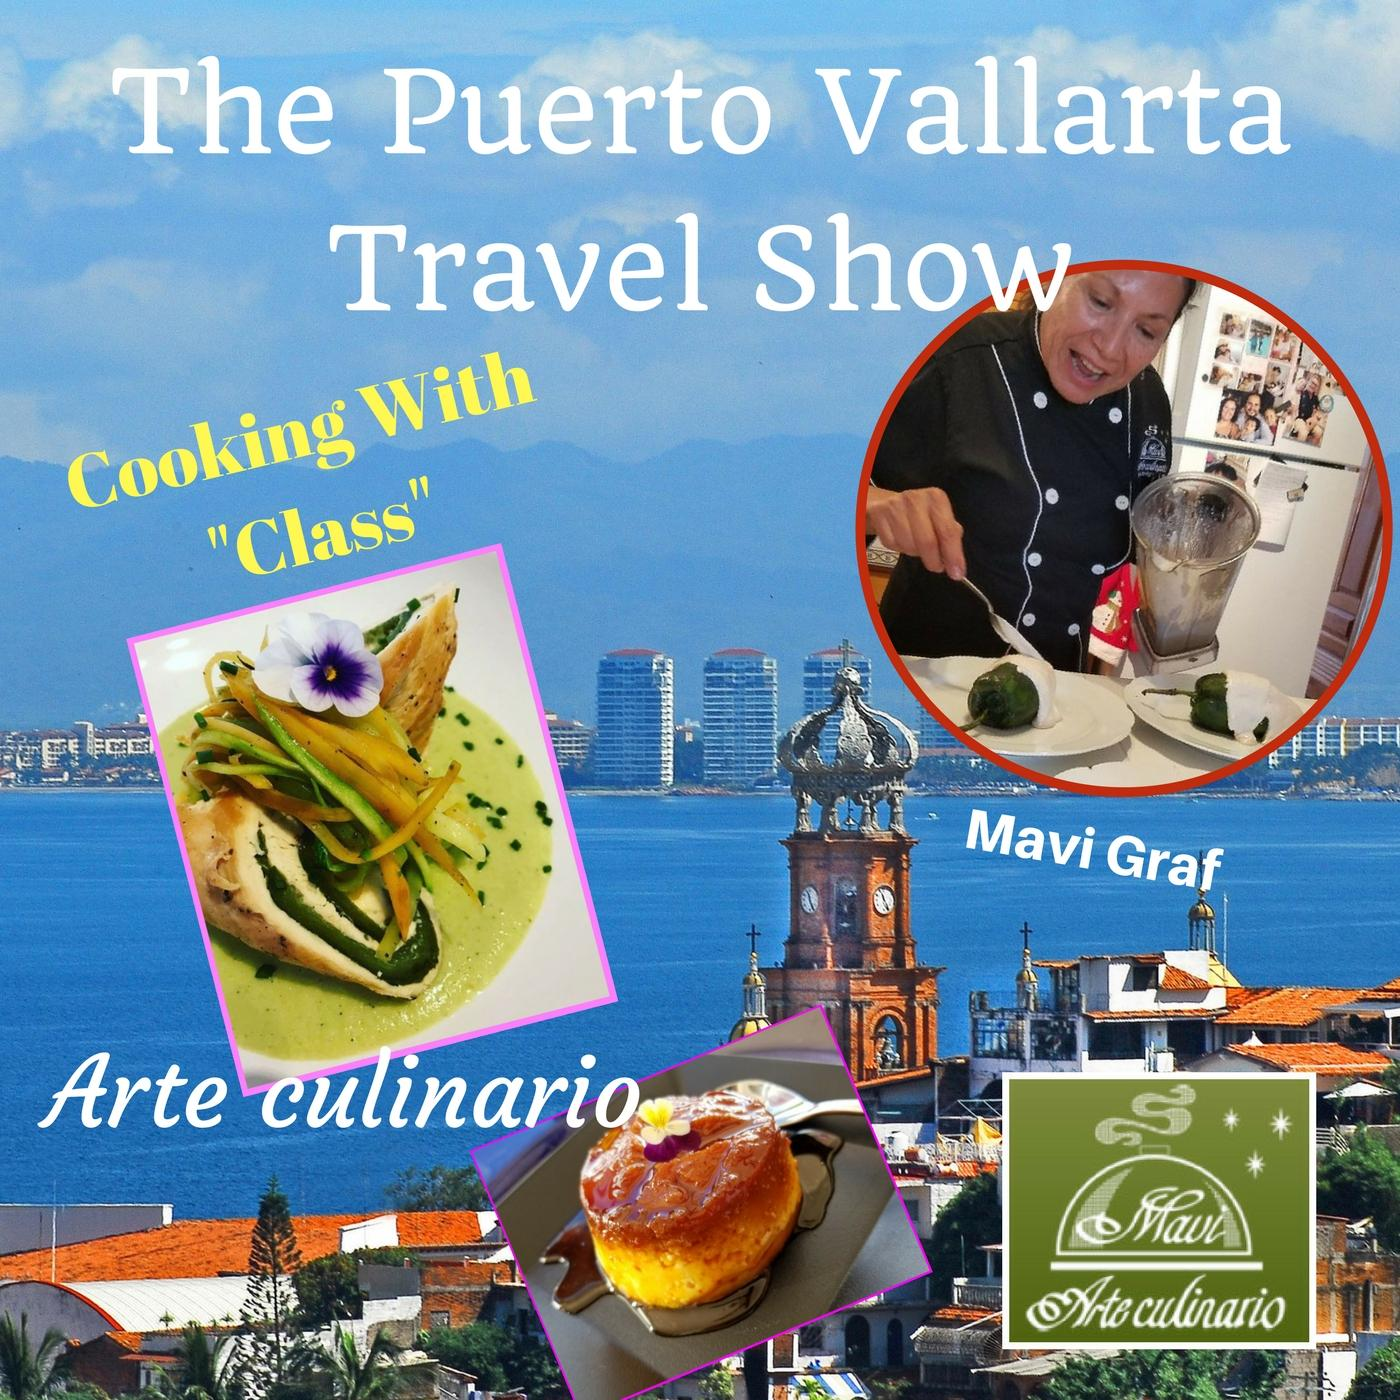 Arte Culinario Wallpaper Puerto Vallarta Travel Show Podcast Cooking Class In Puerto